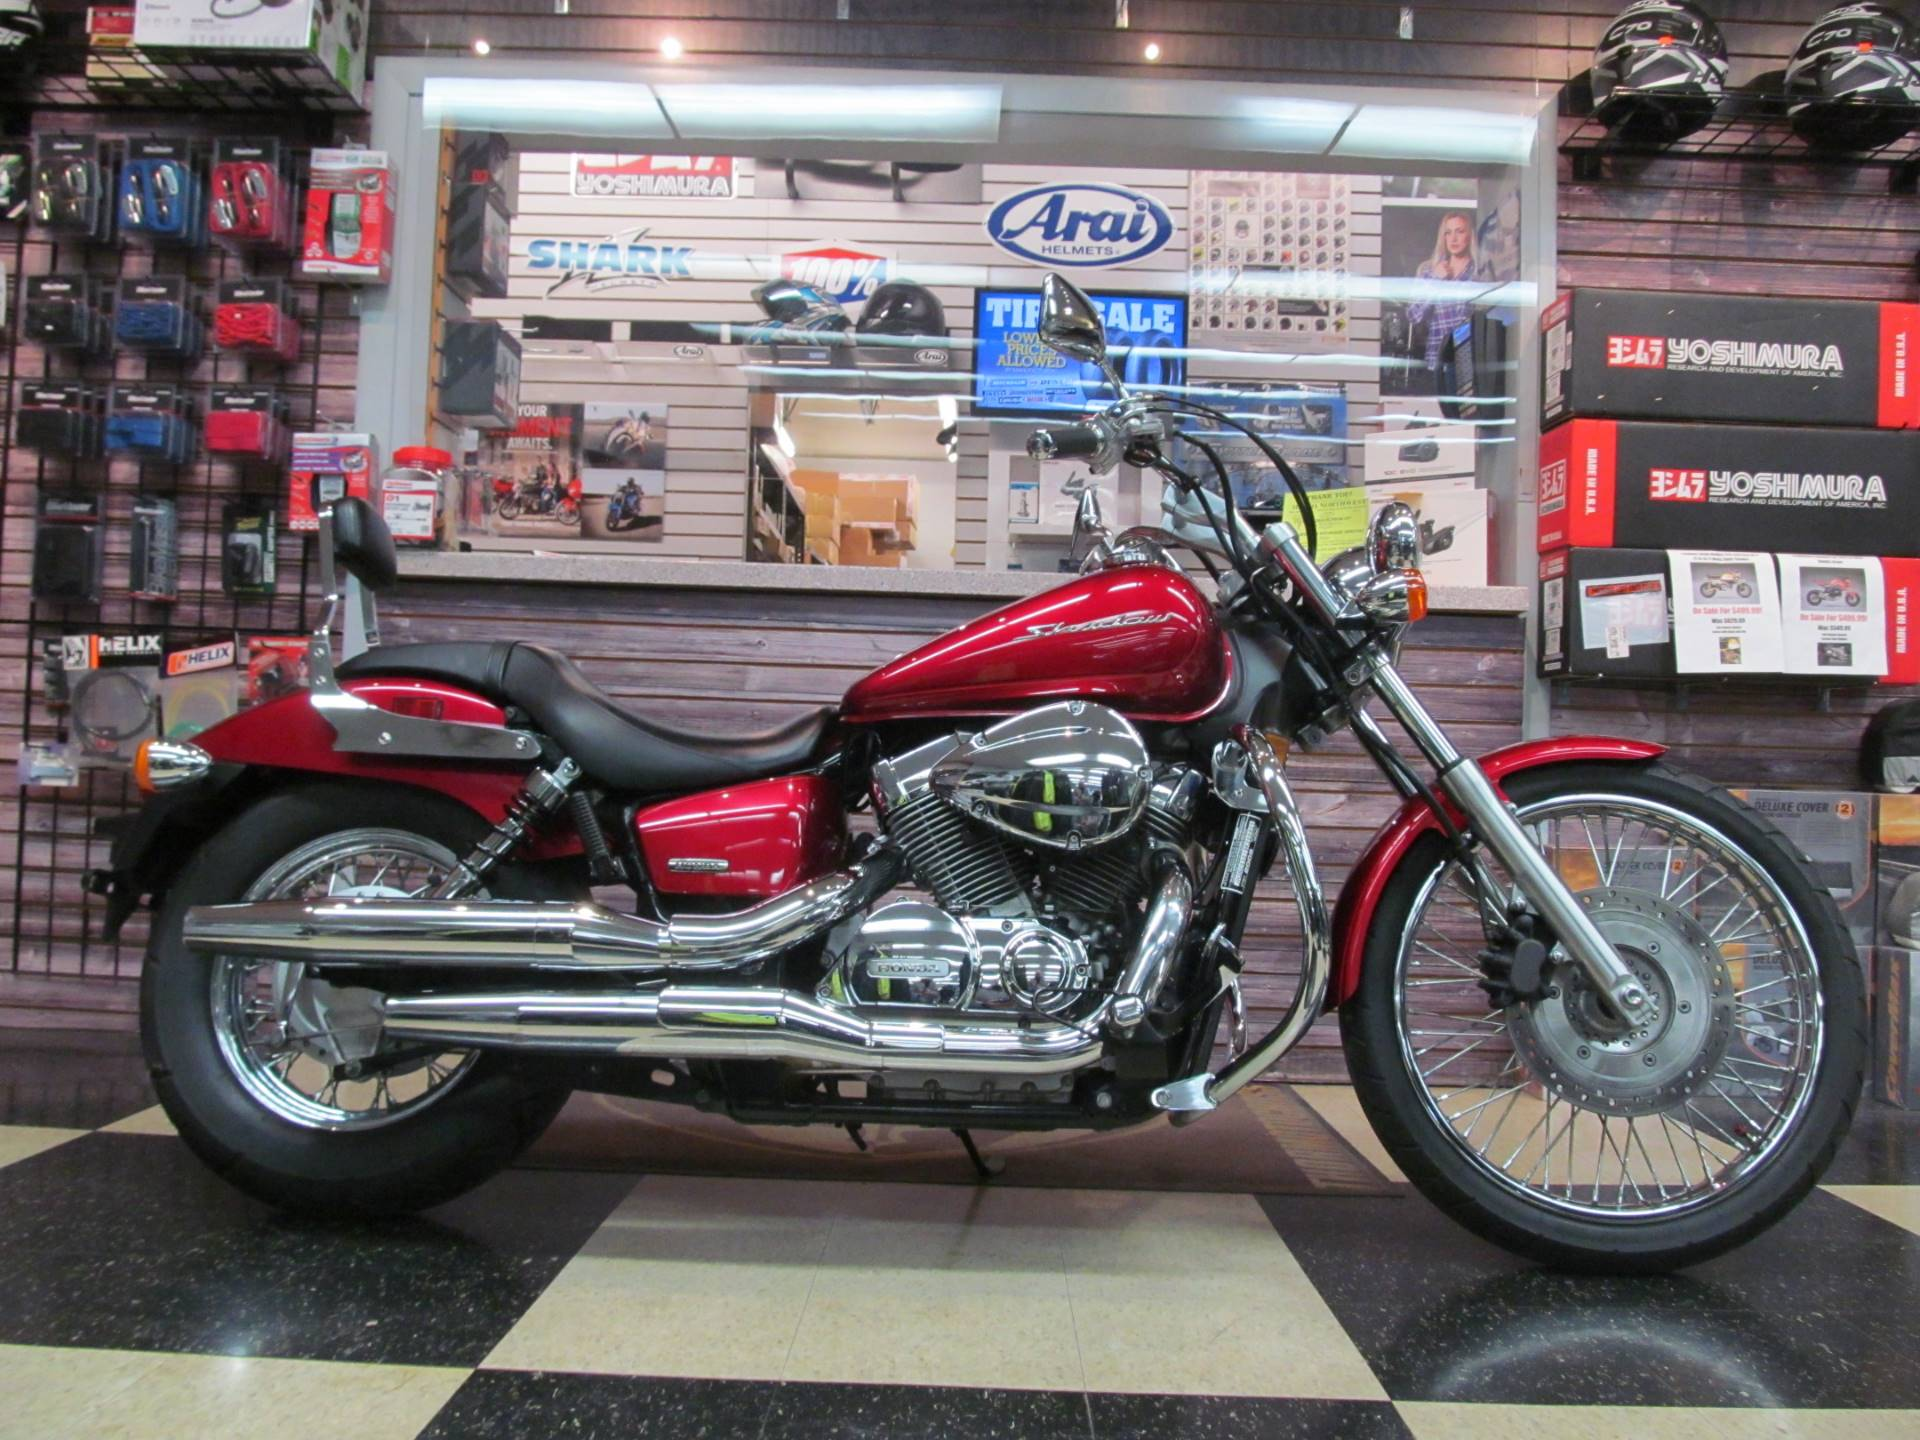 2009 Honda Shadow Spirit 750 in Crystal Lake, Illinois - Photo 1